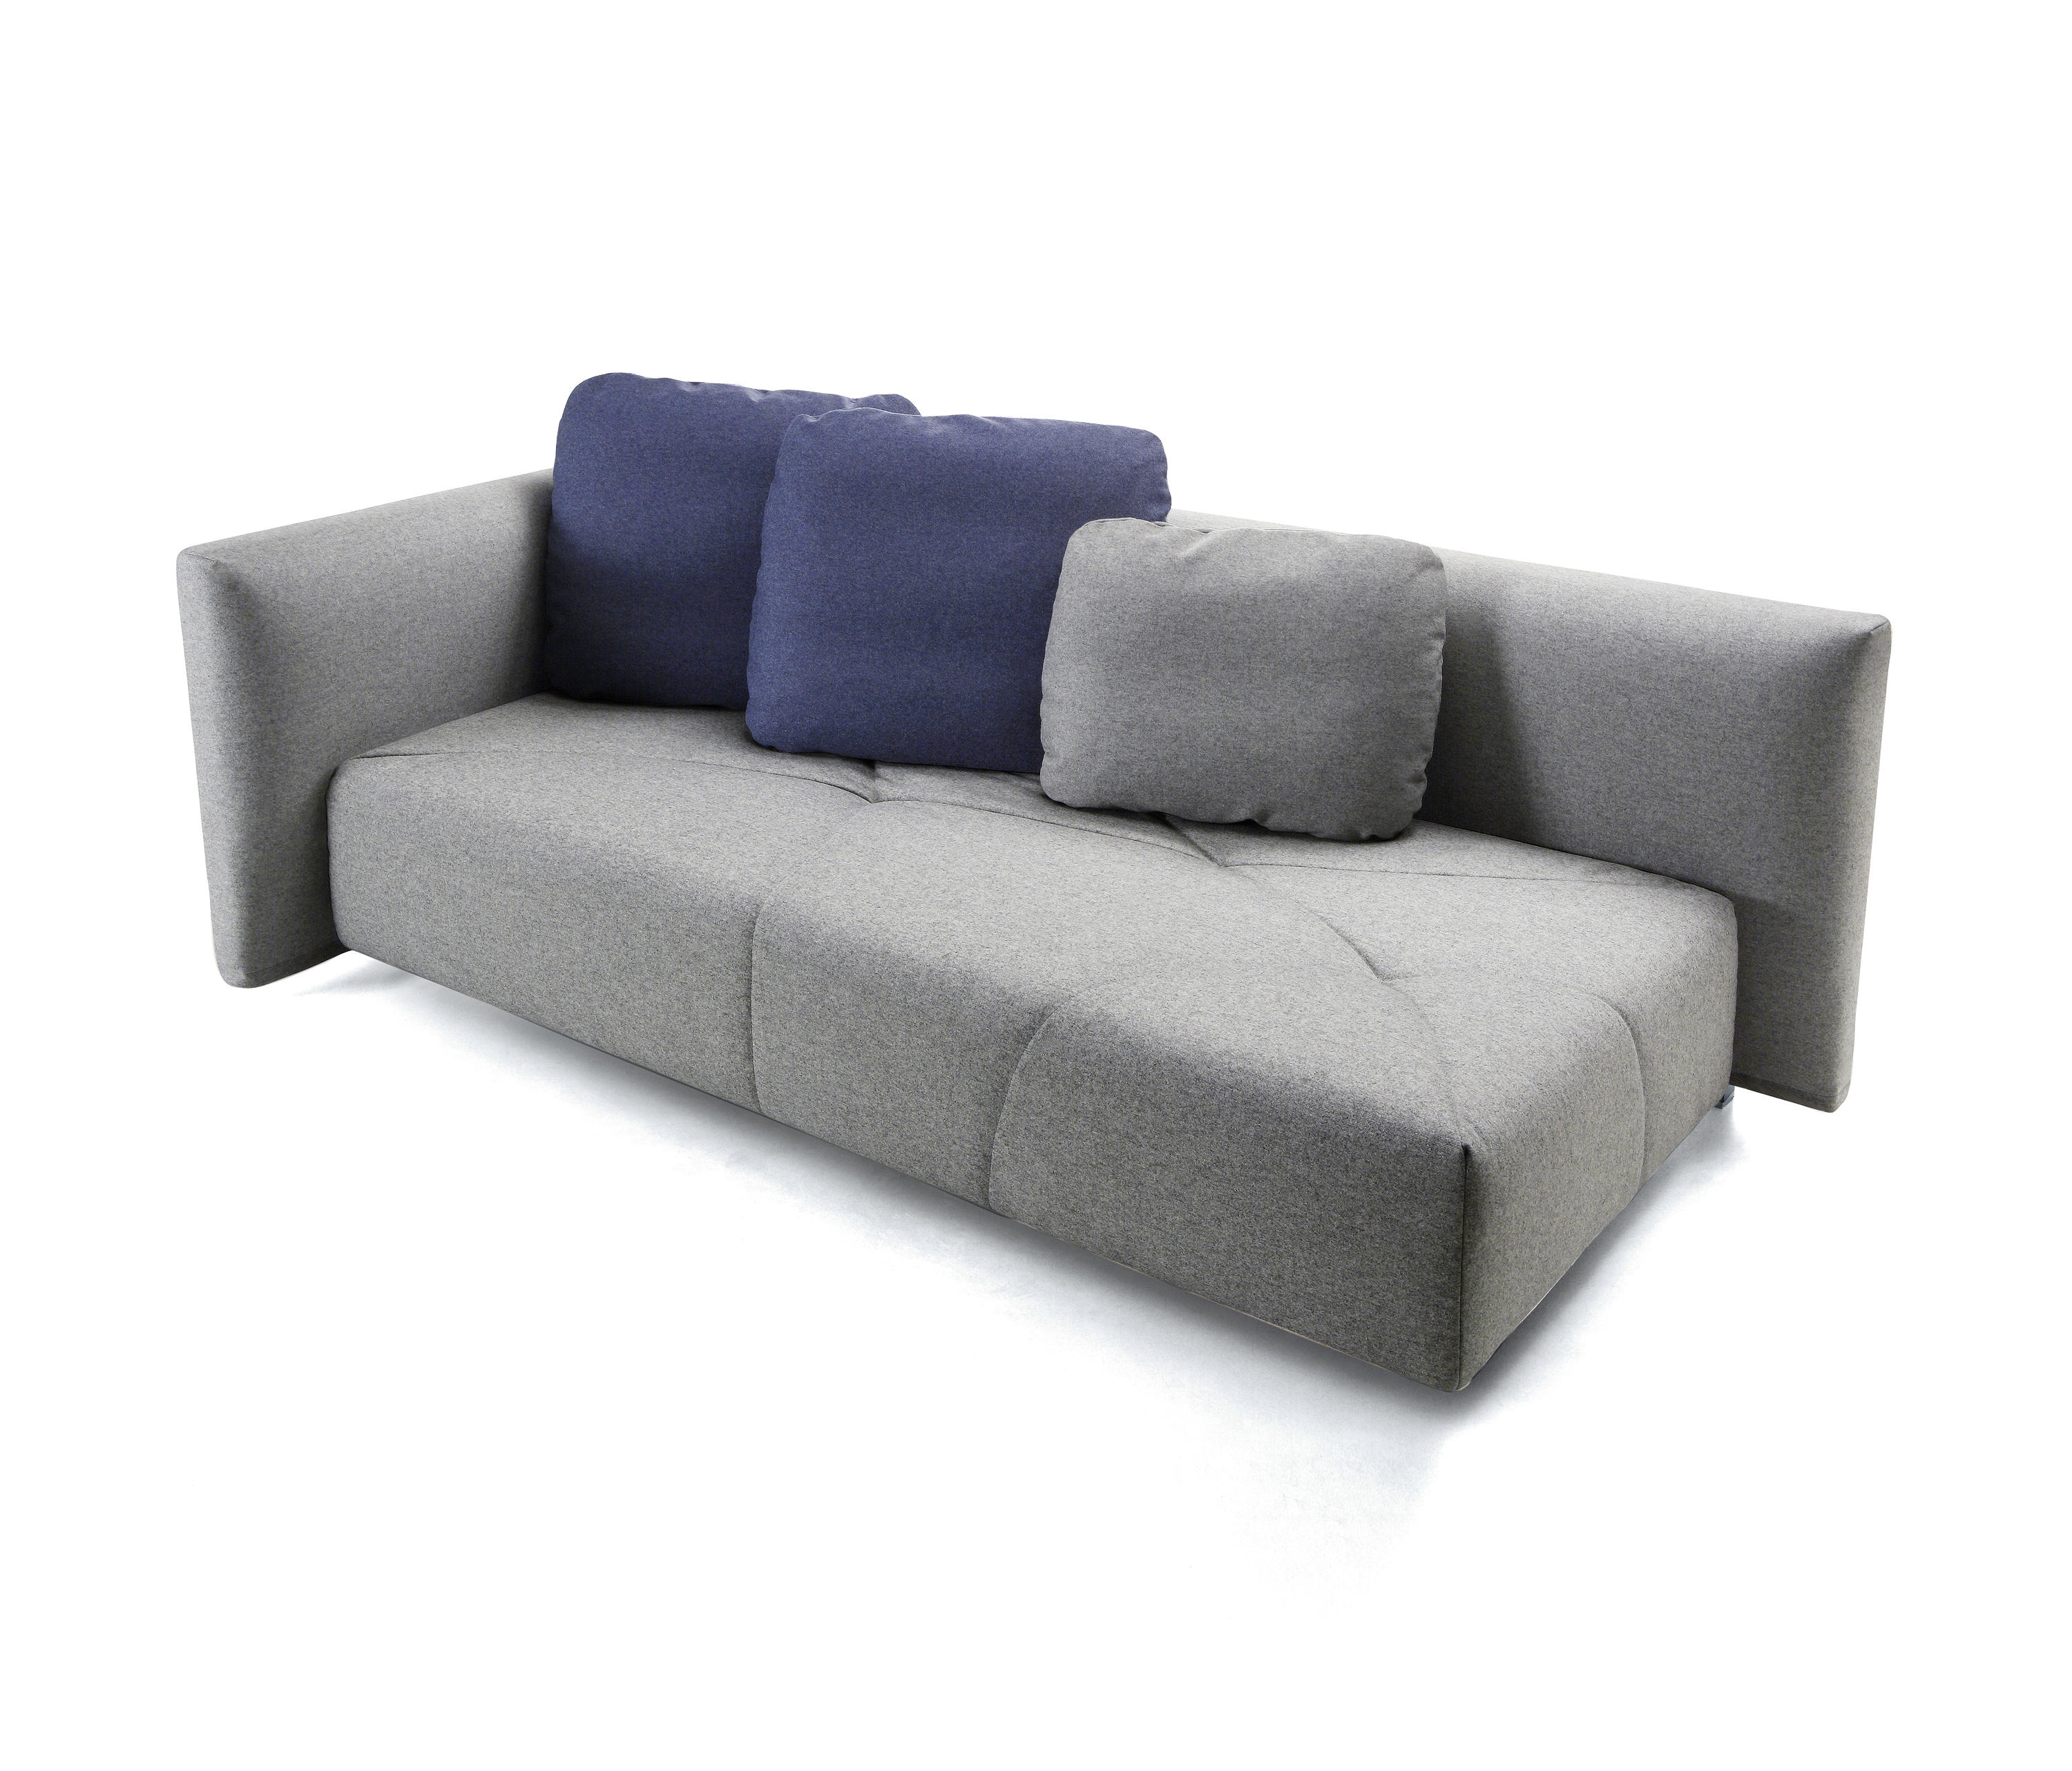 single sofa design odd shaped sectional sofas bedbed from you edit architonic by